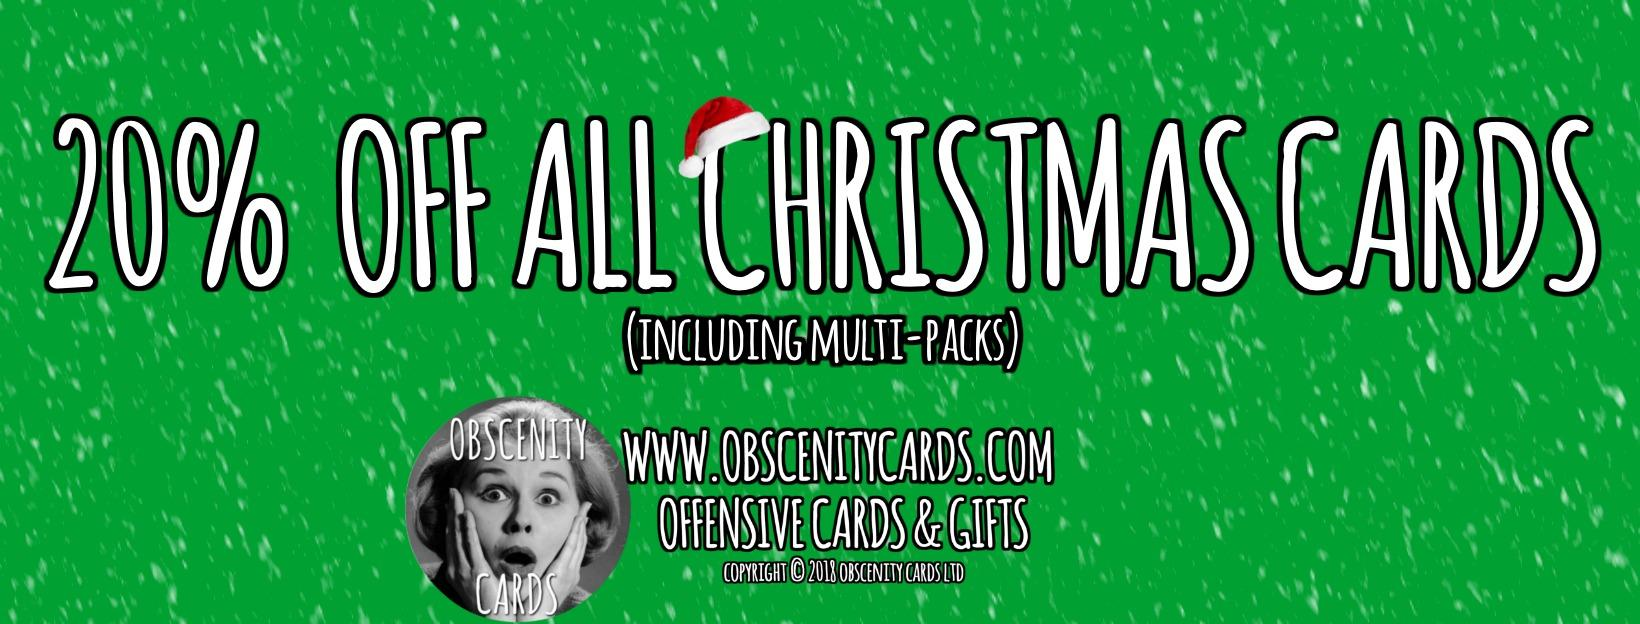 20% OFF ALL CHRISTMAS CARDS